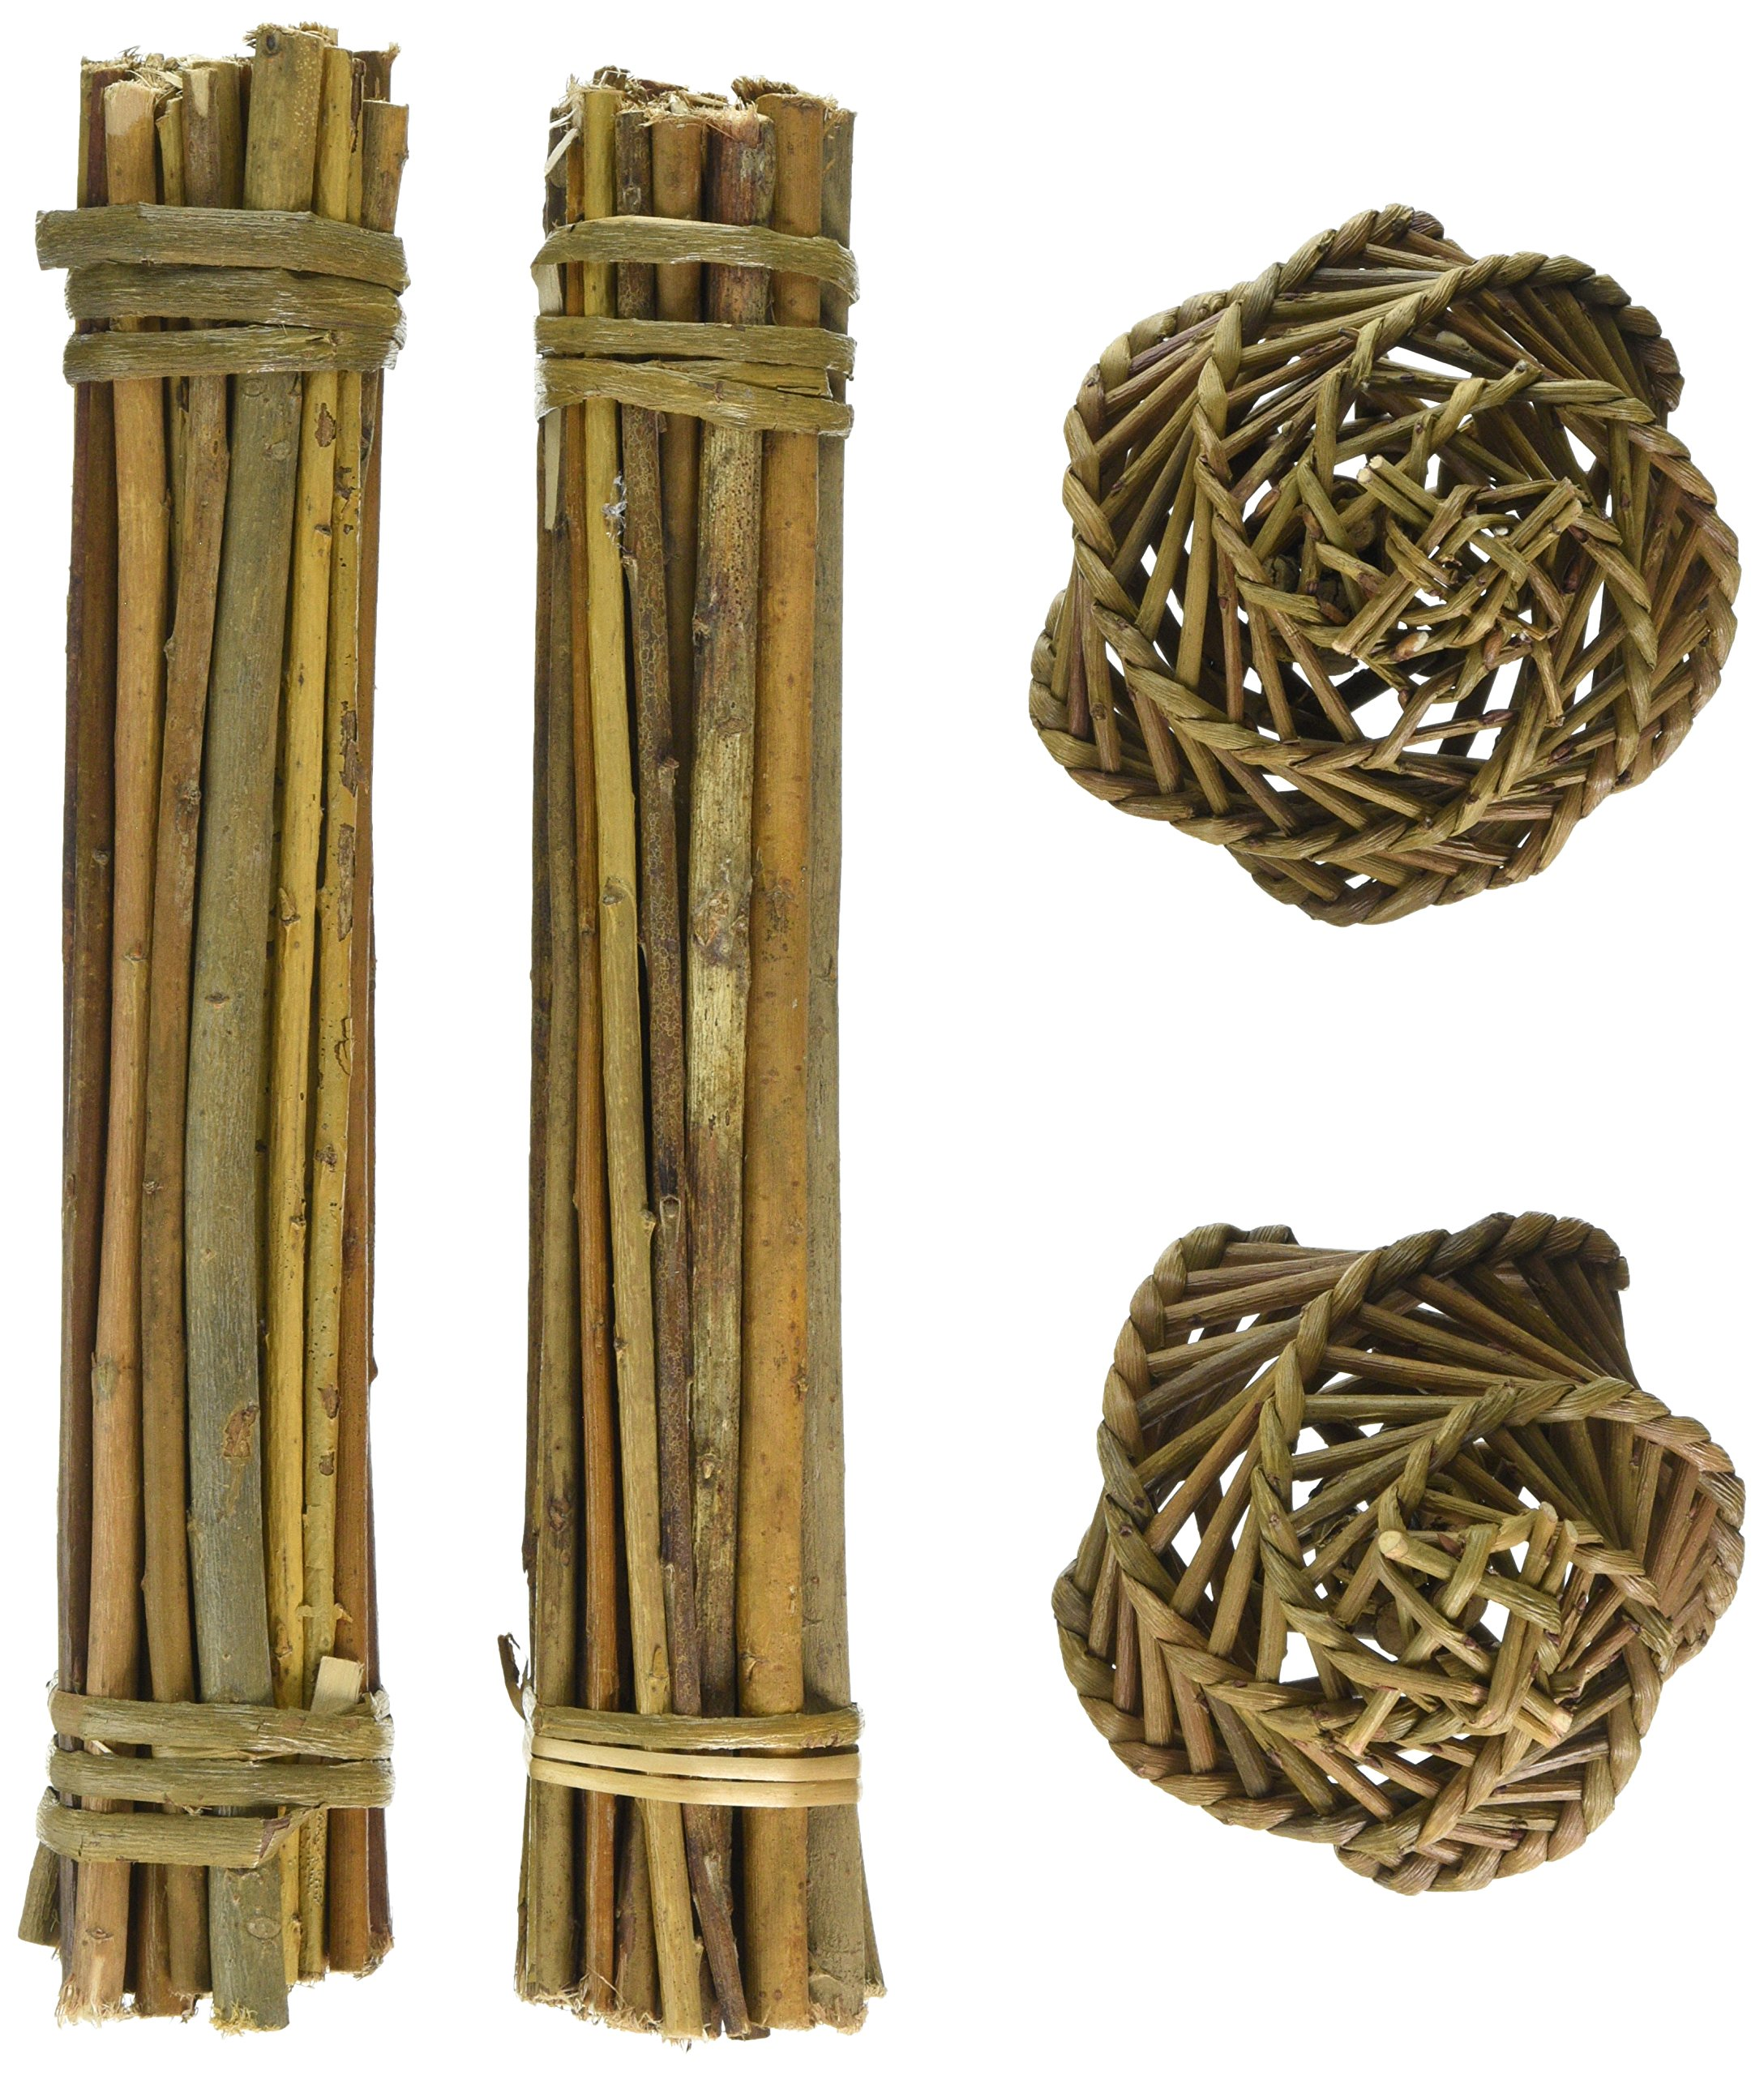 Happypet® Nature First Willow Value Pack - 2 Willow Sticks & 2 Willow Balls - Suitable for Small Animals